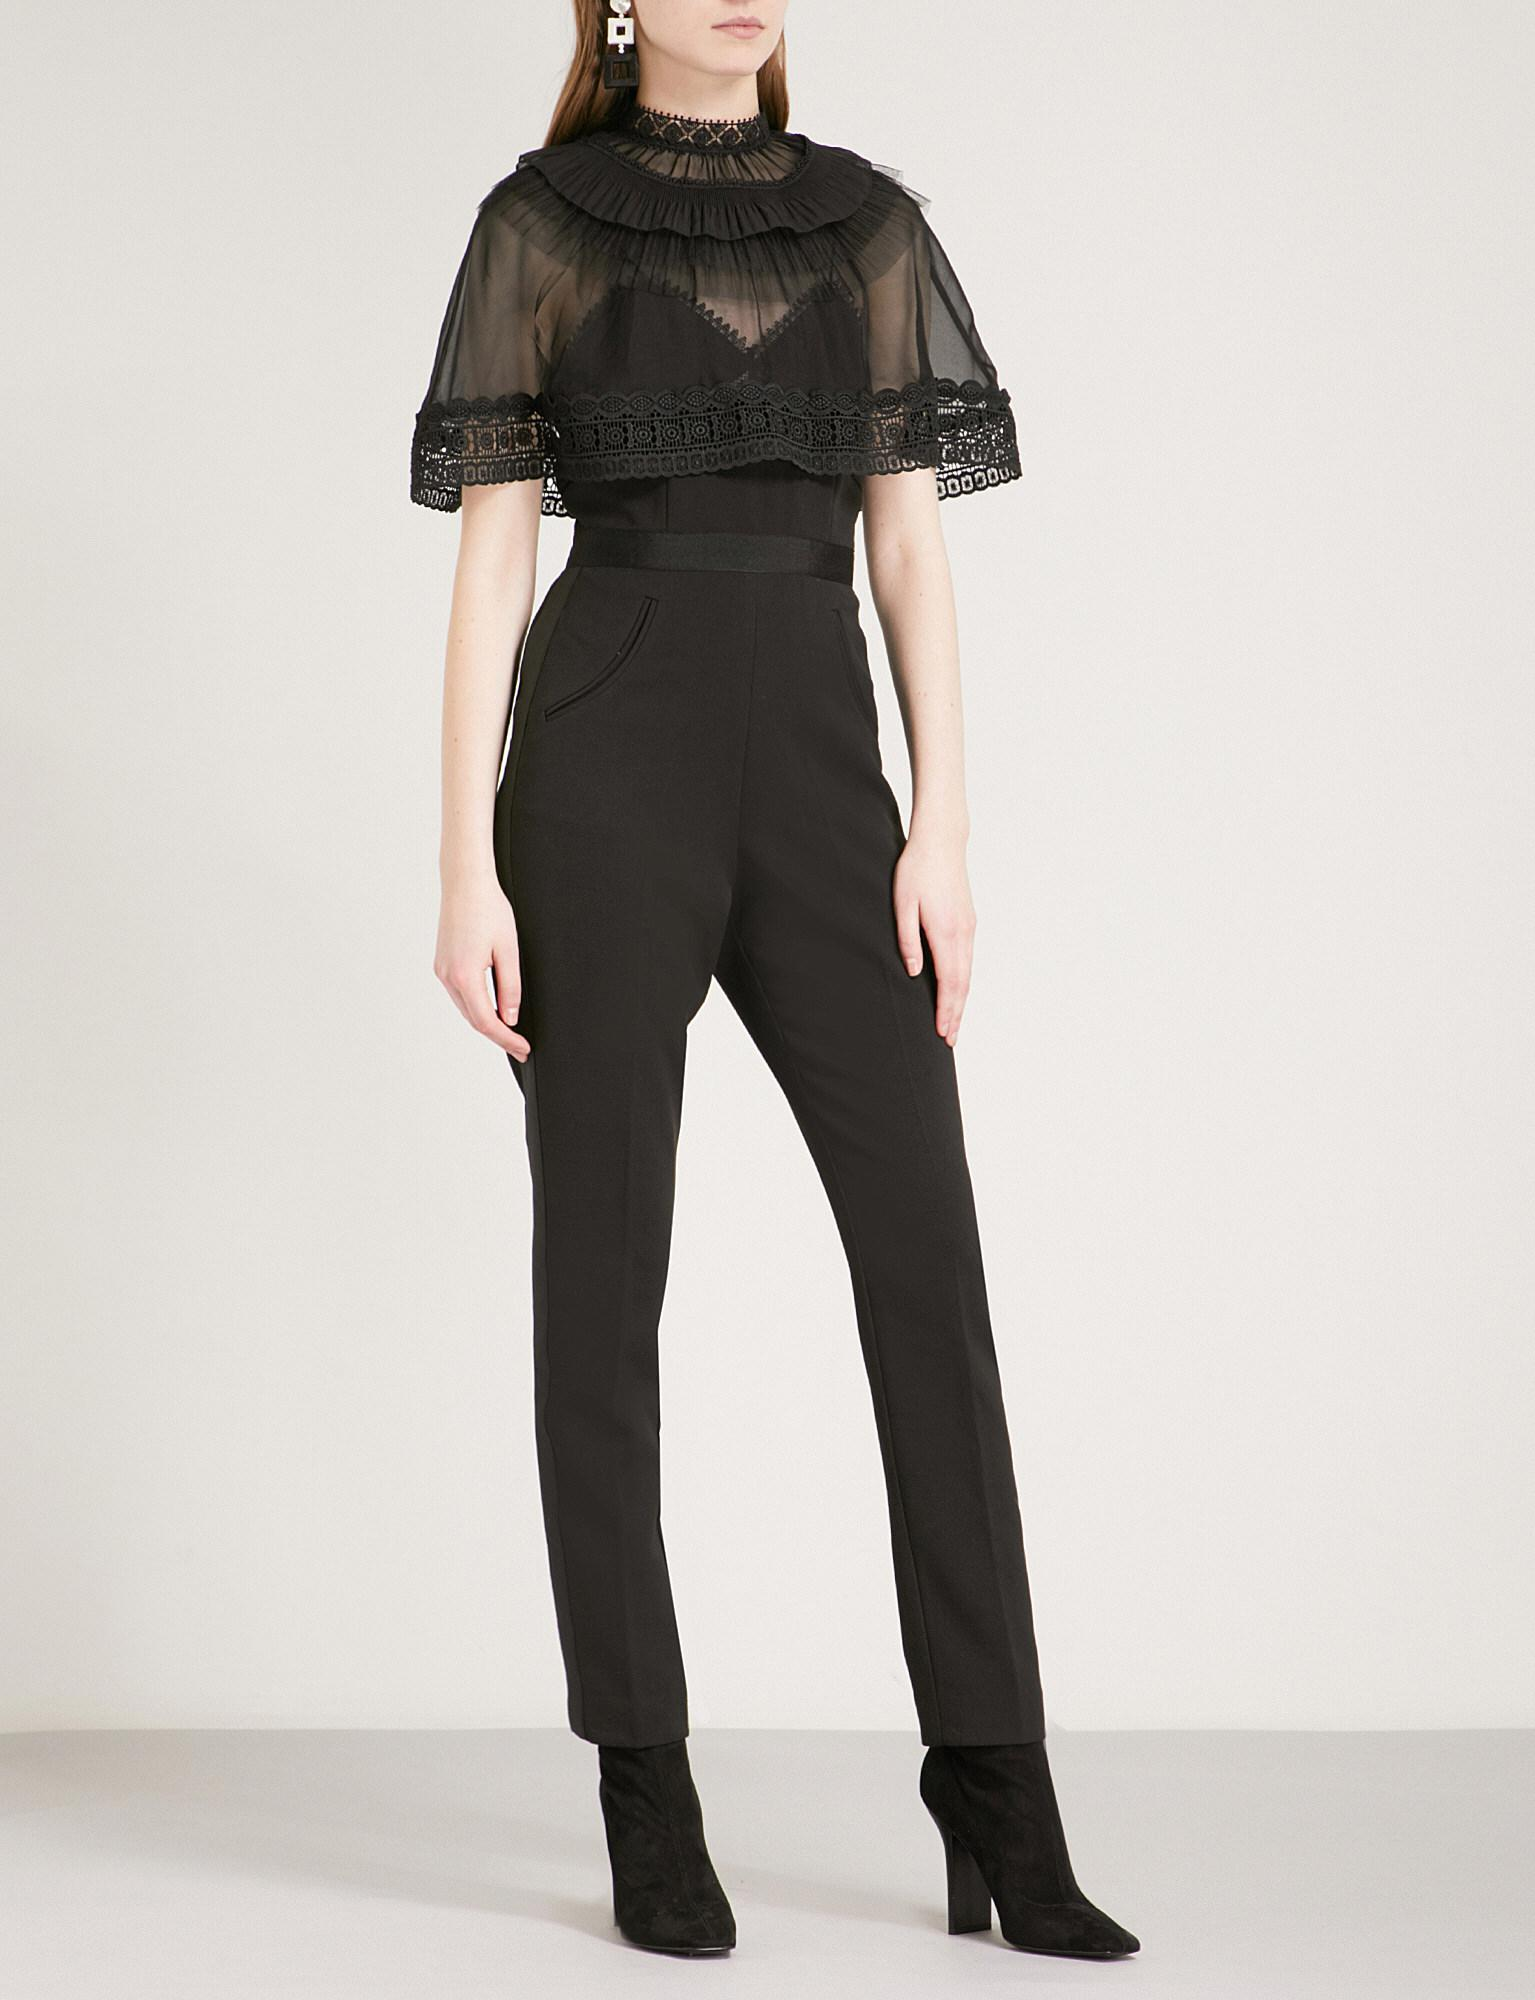 57e1a6df565a Lyst - Self-Portrait Trimmed Overlay Crepe Jumpsuit in Black